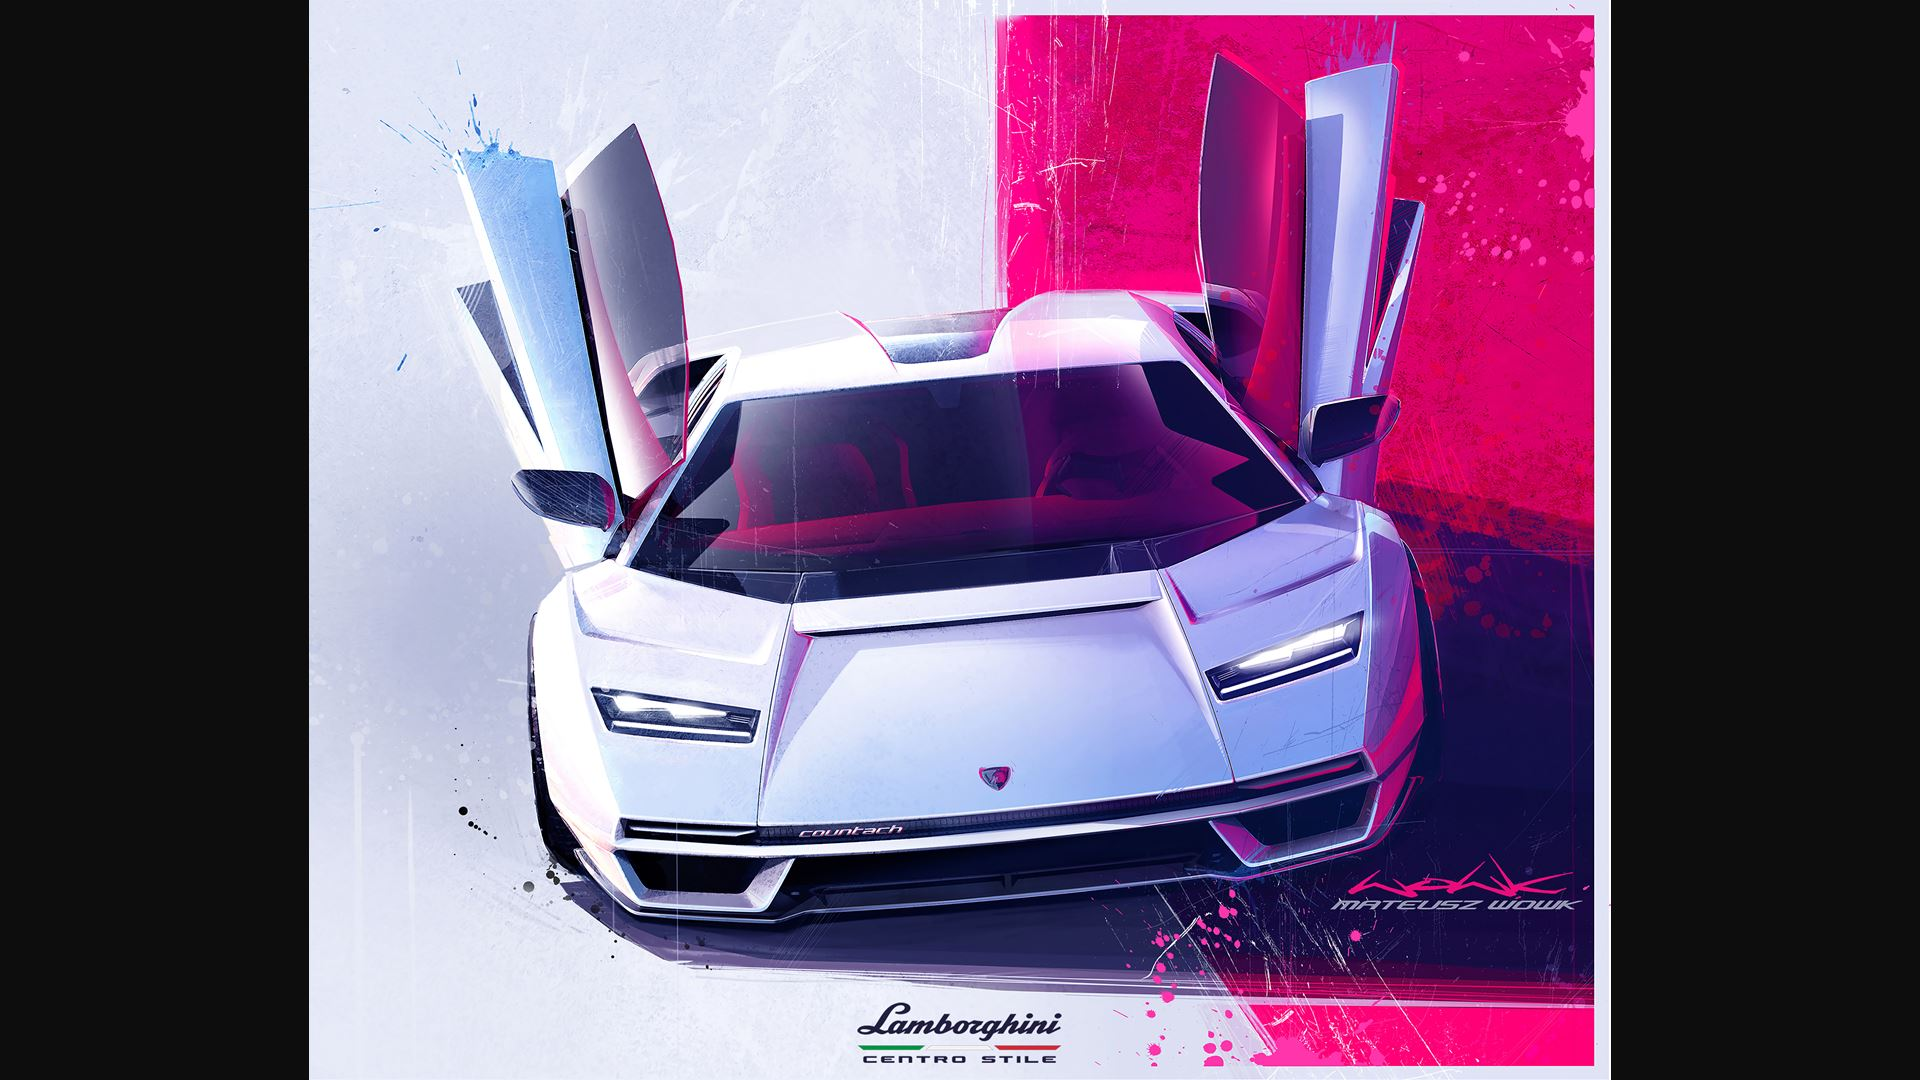 Lamborghini Countach LPI 800-4. A design and technology benchmark for modern super sports cars, reimagined for a new era: Our legacy to the future - Image 6